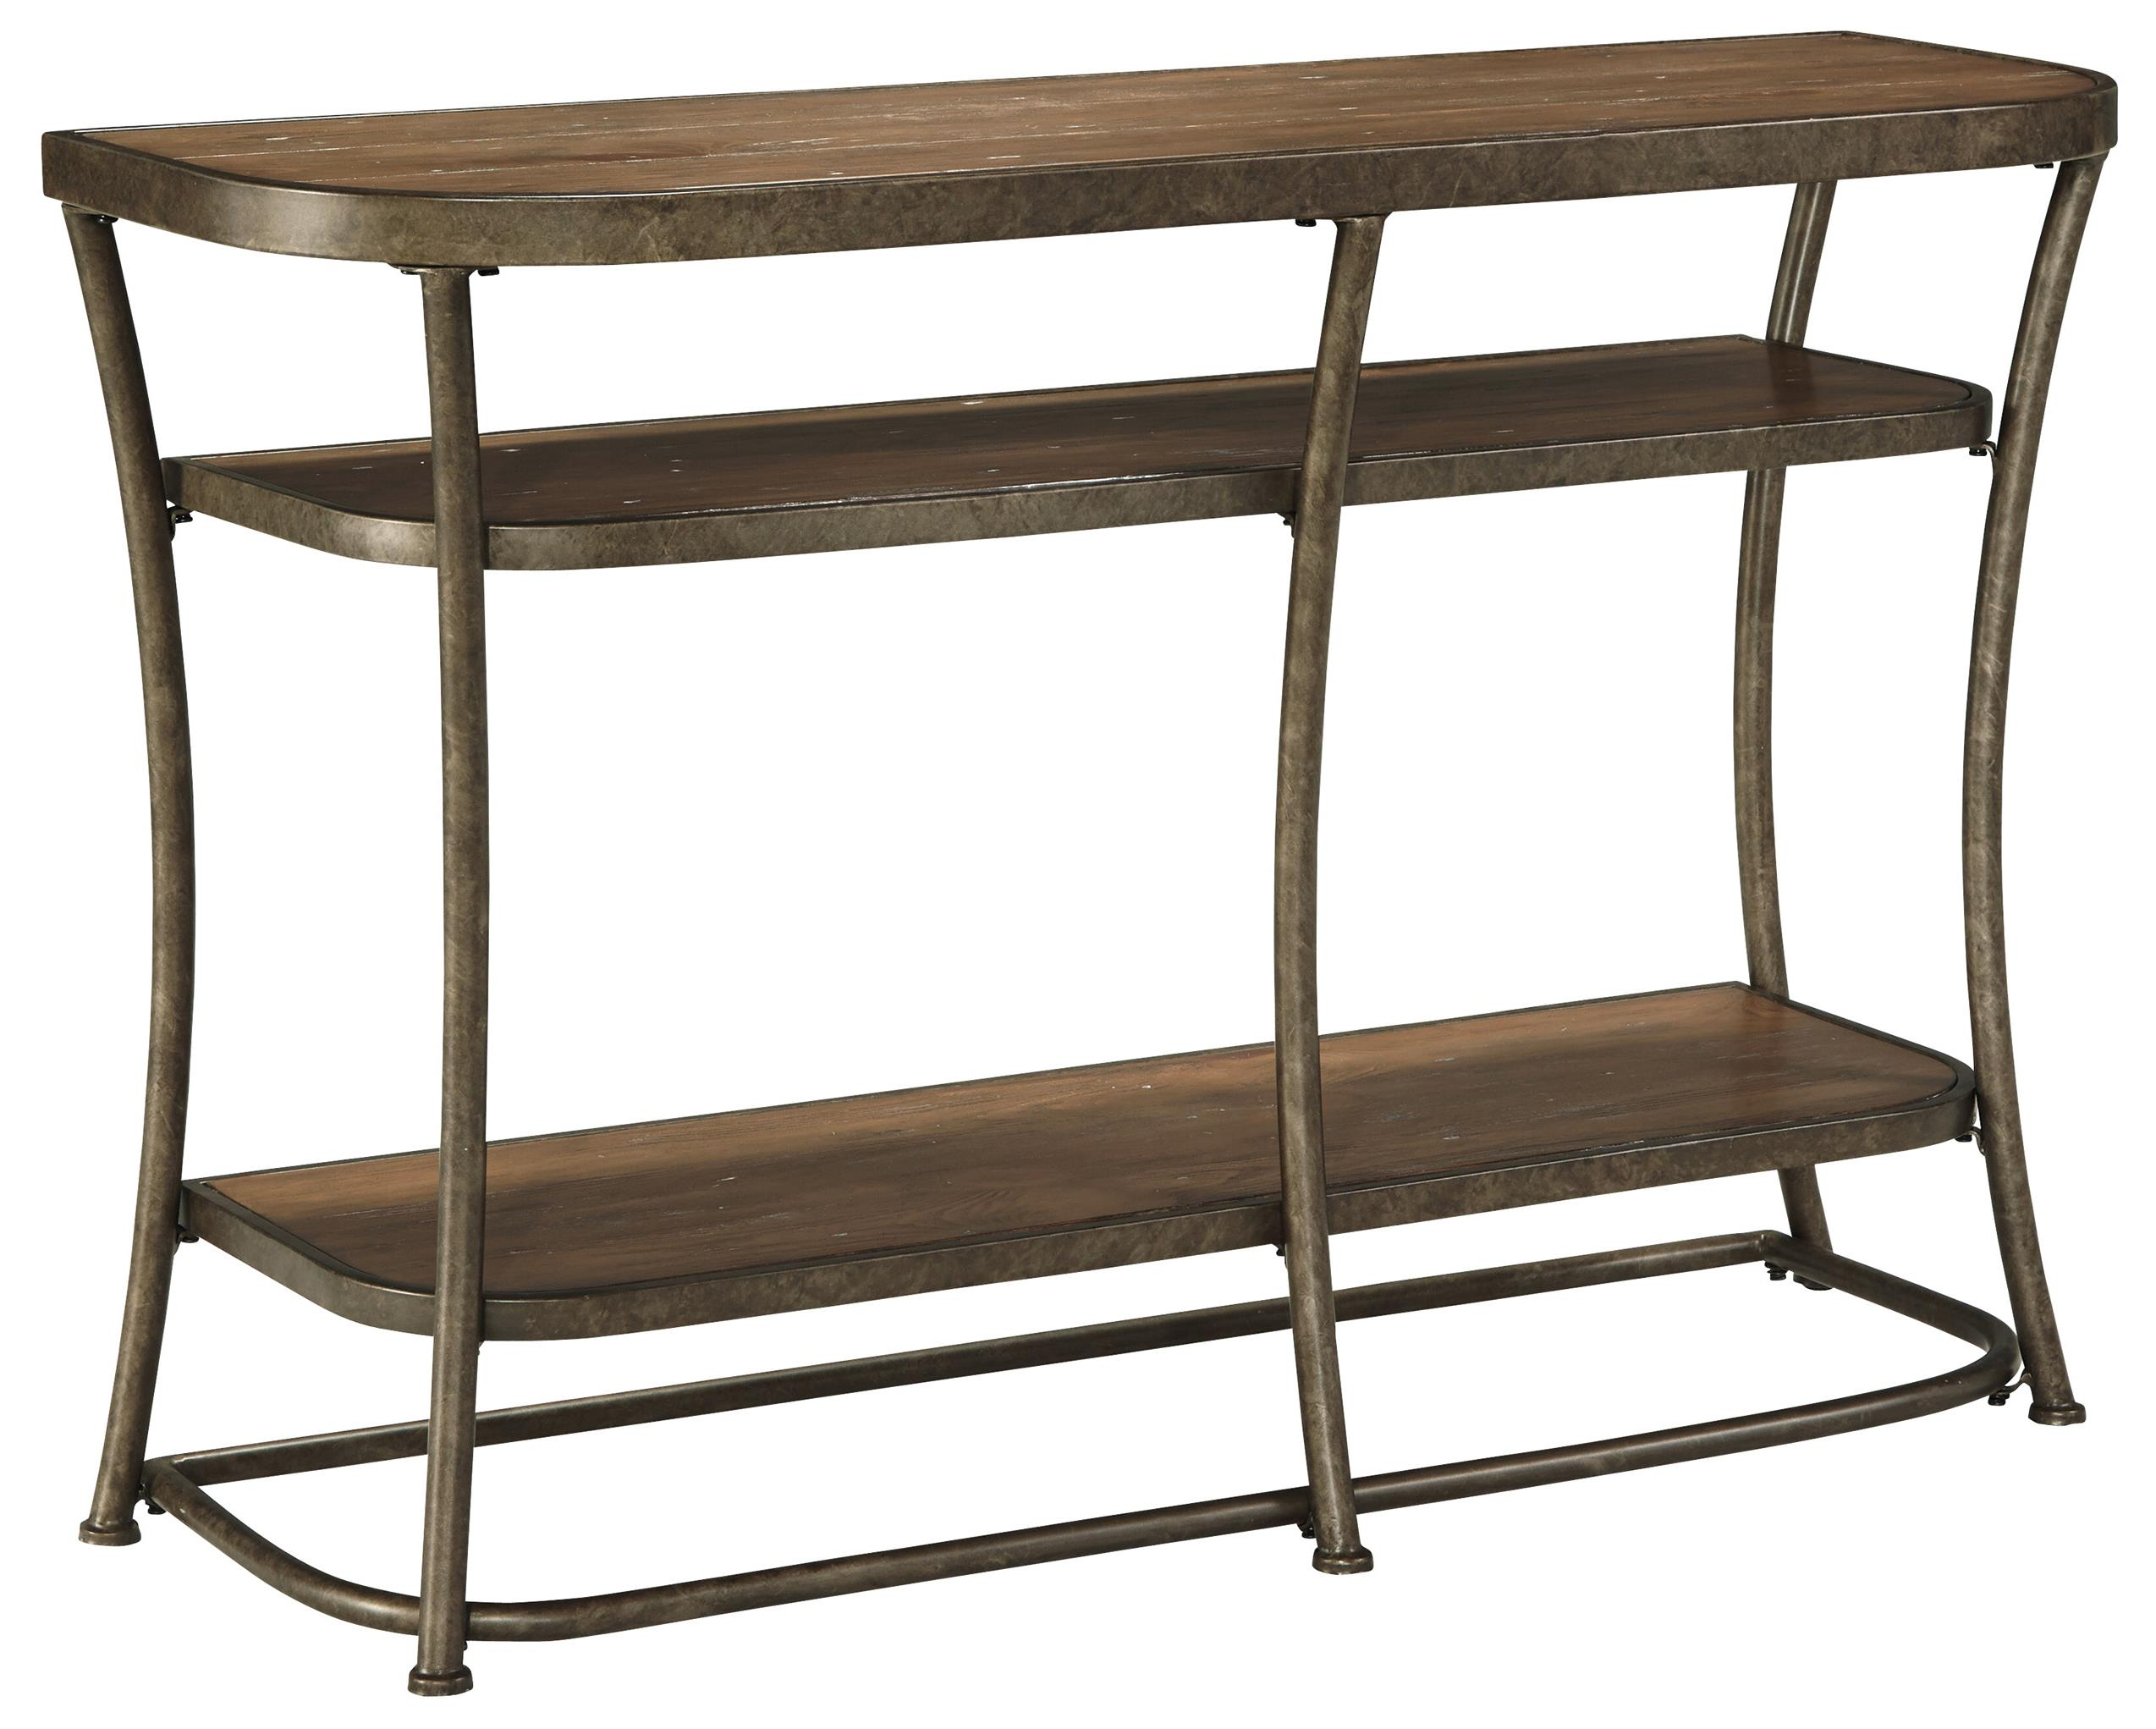 Rustic Metal Frame Sofa Table with Distressed Pine Top & Shelves